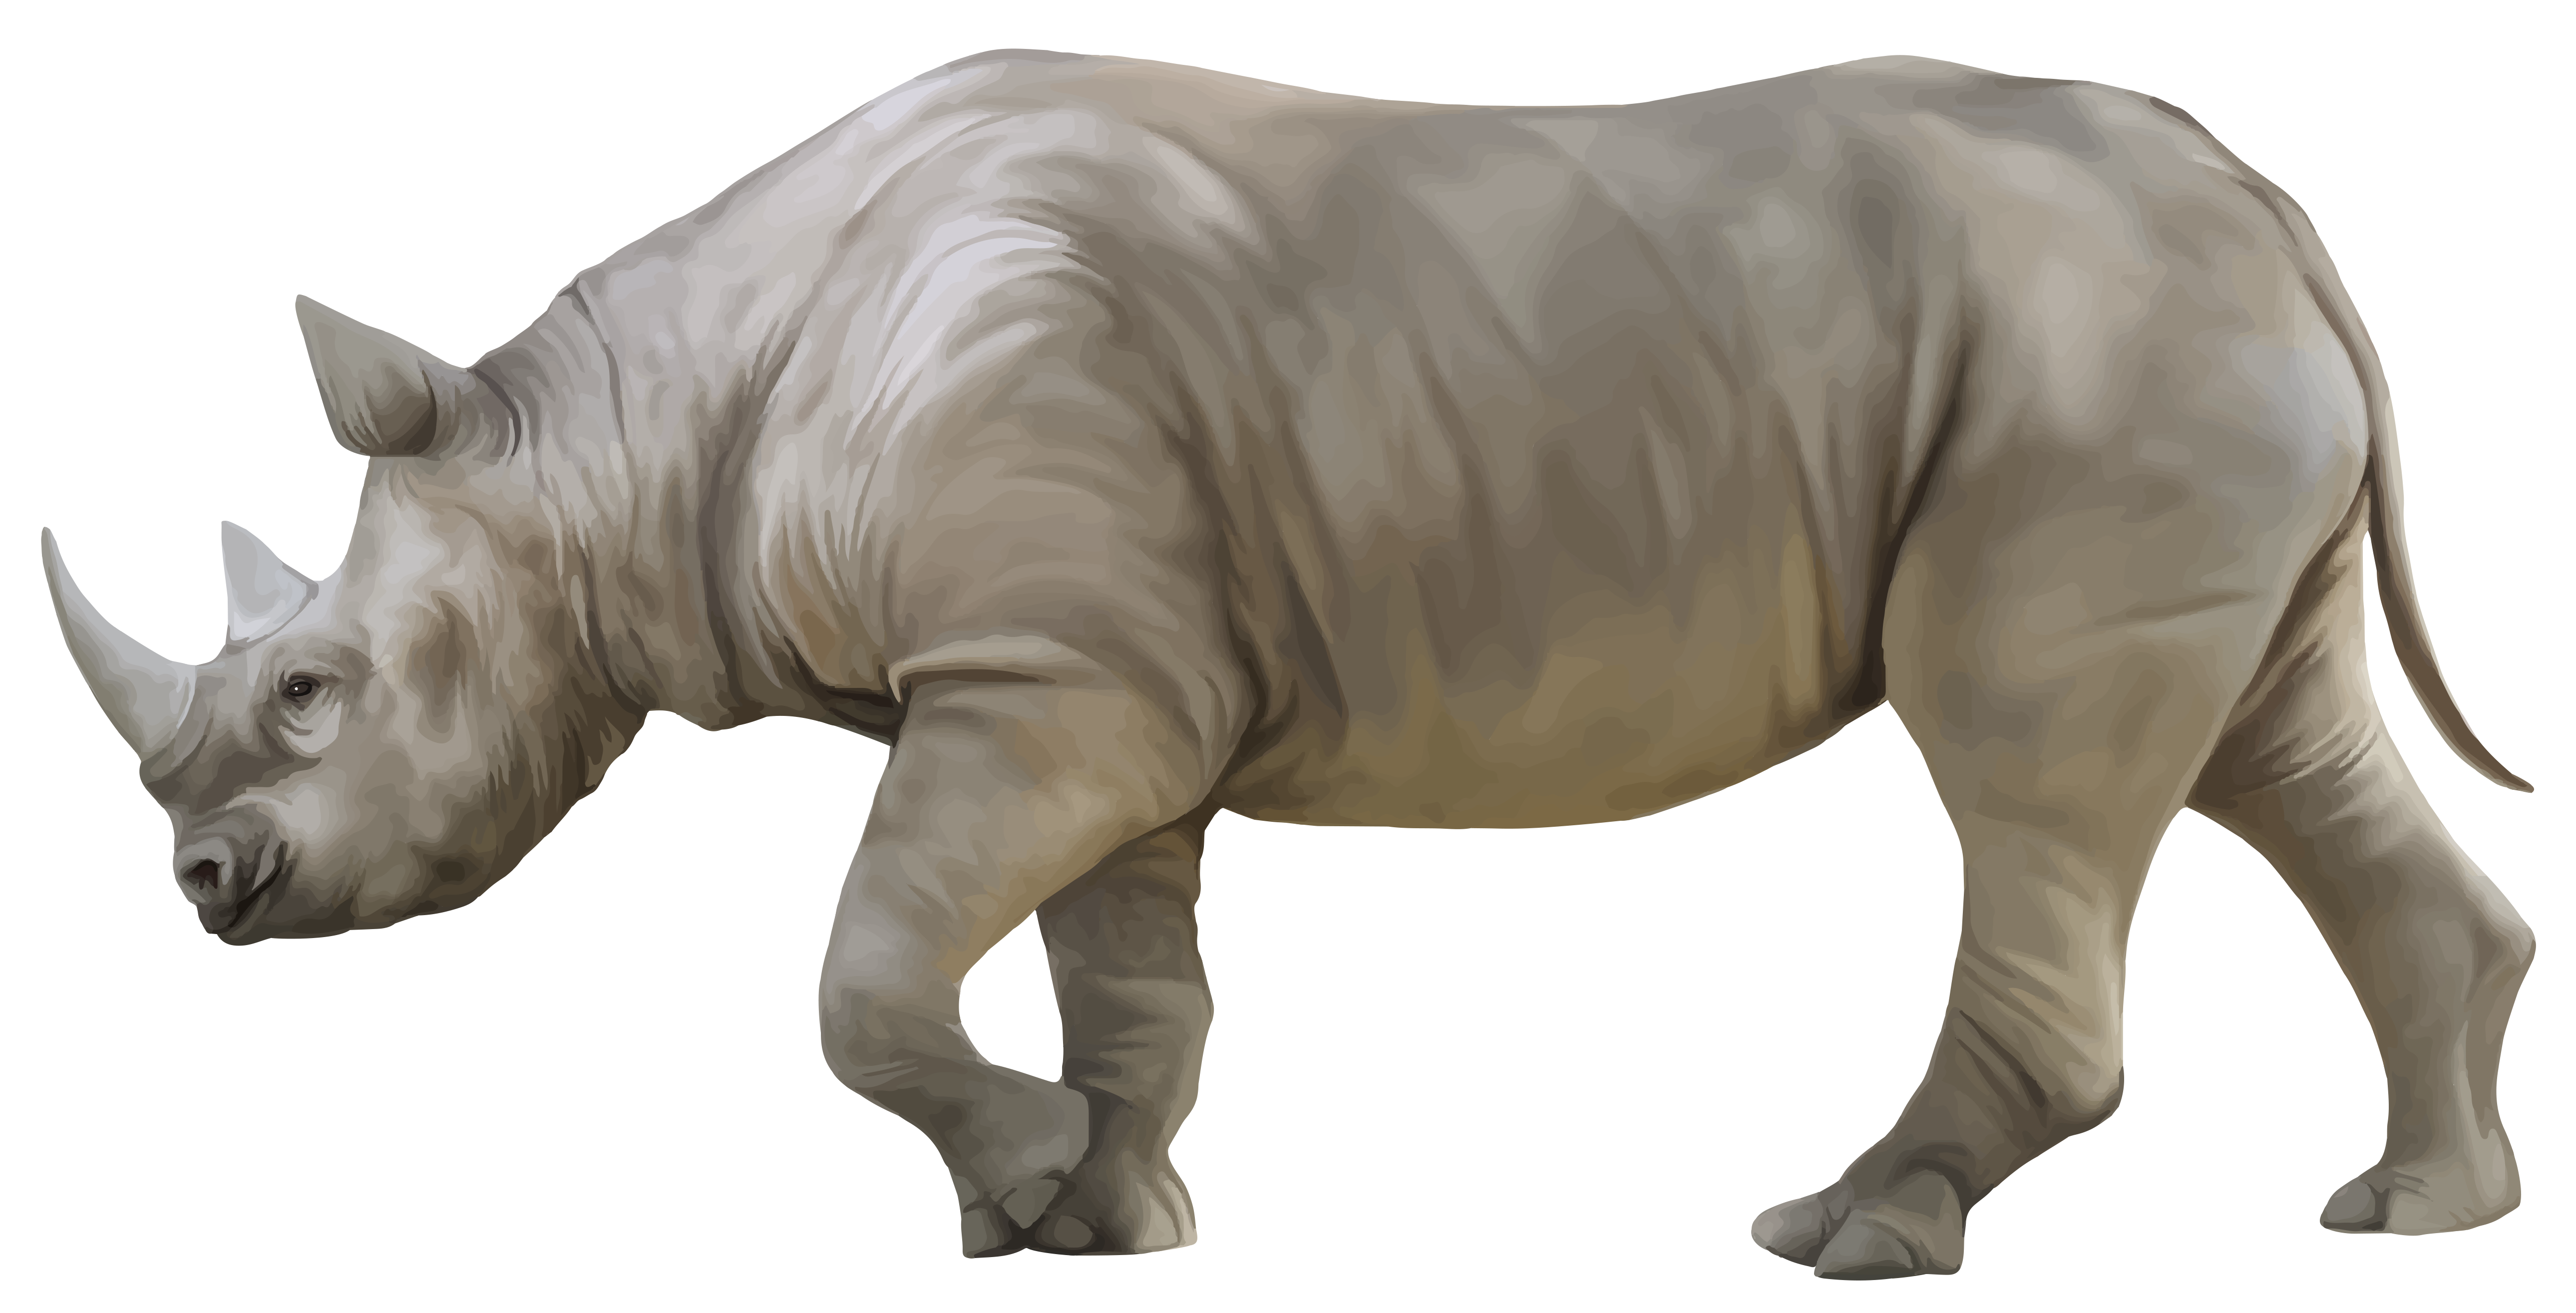 Rhino clipart real. Png best web